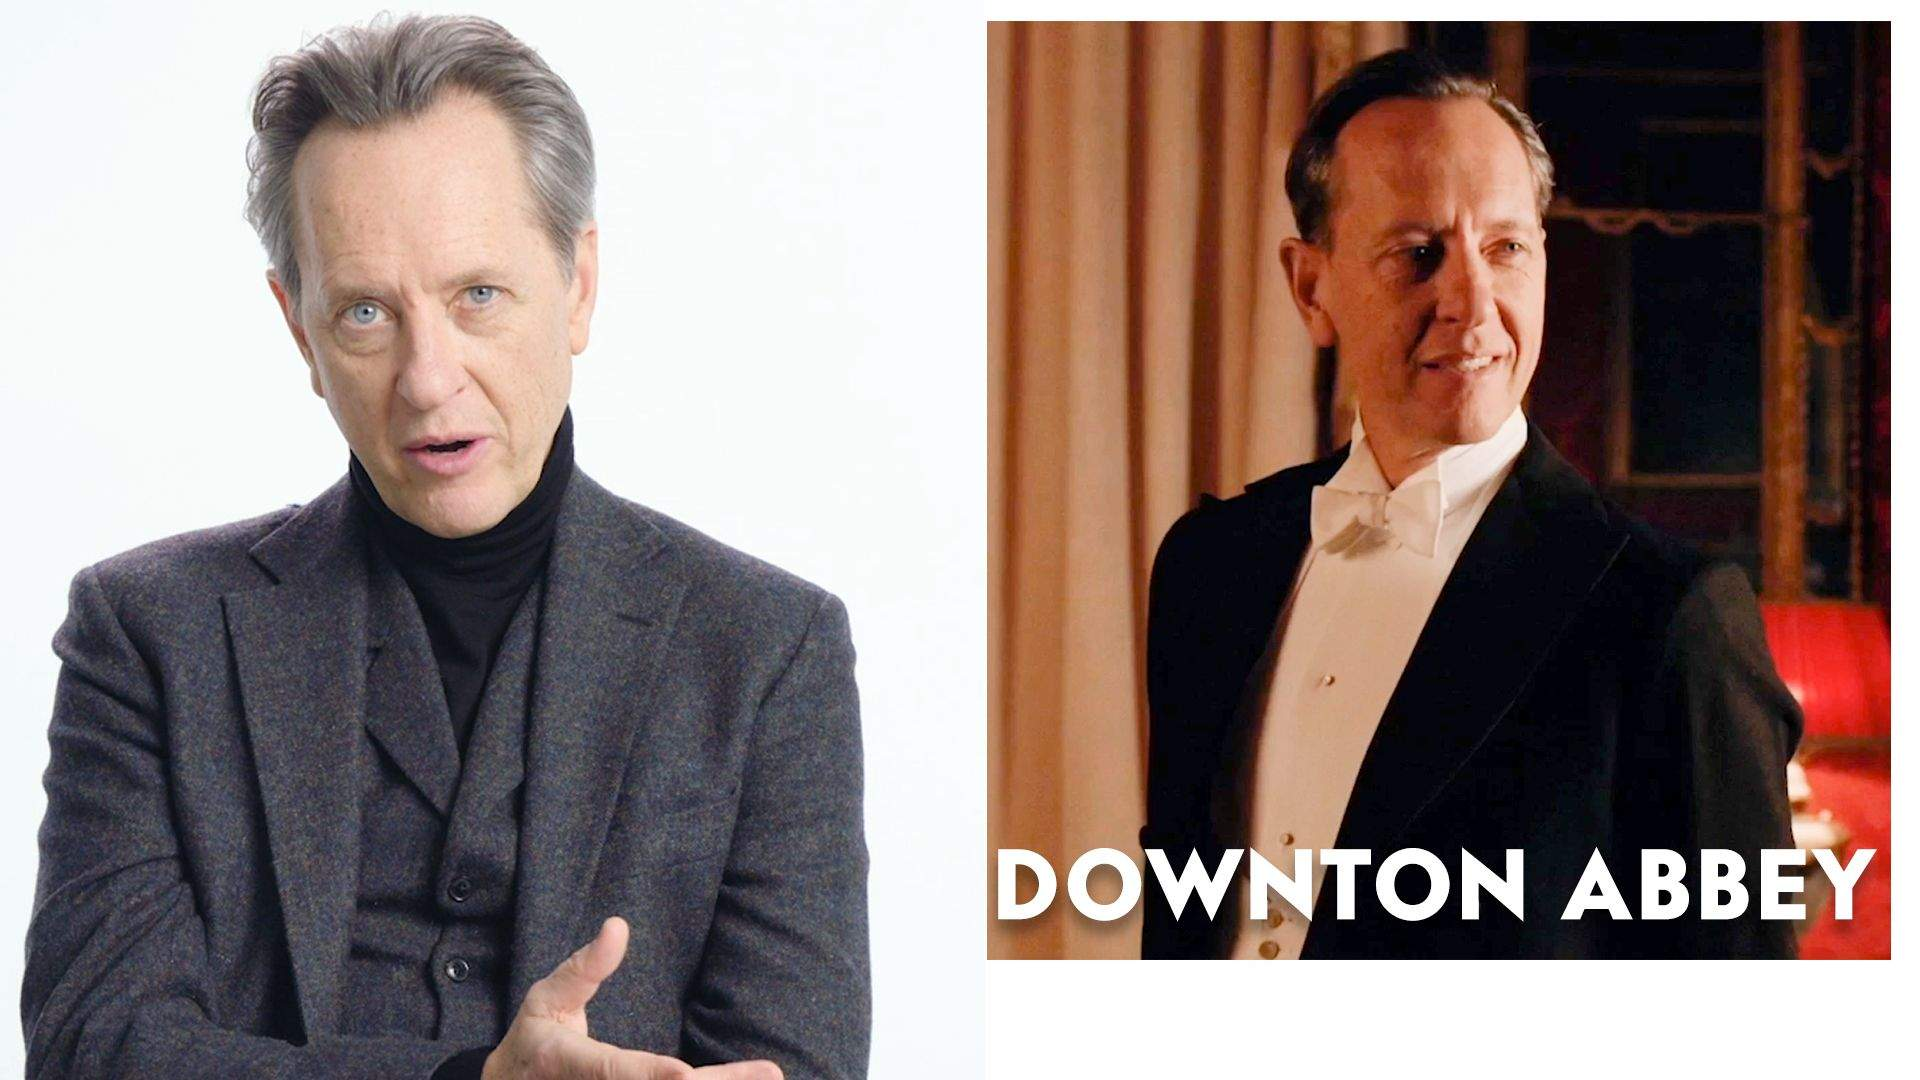 Richard E. Grant Breaks Down His Career, from 'Downton Abbey' to 'Star Wars'